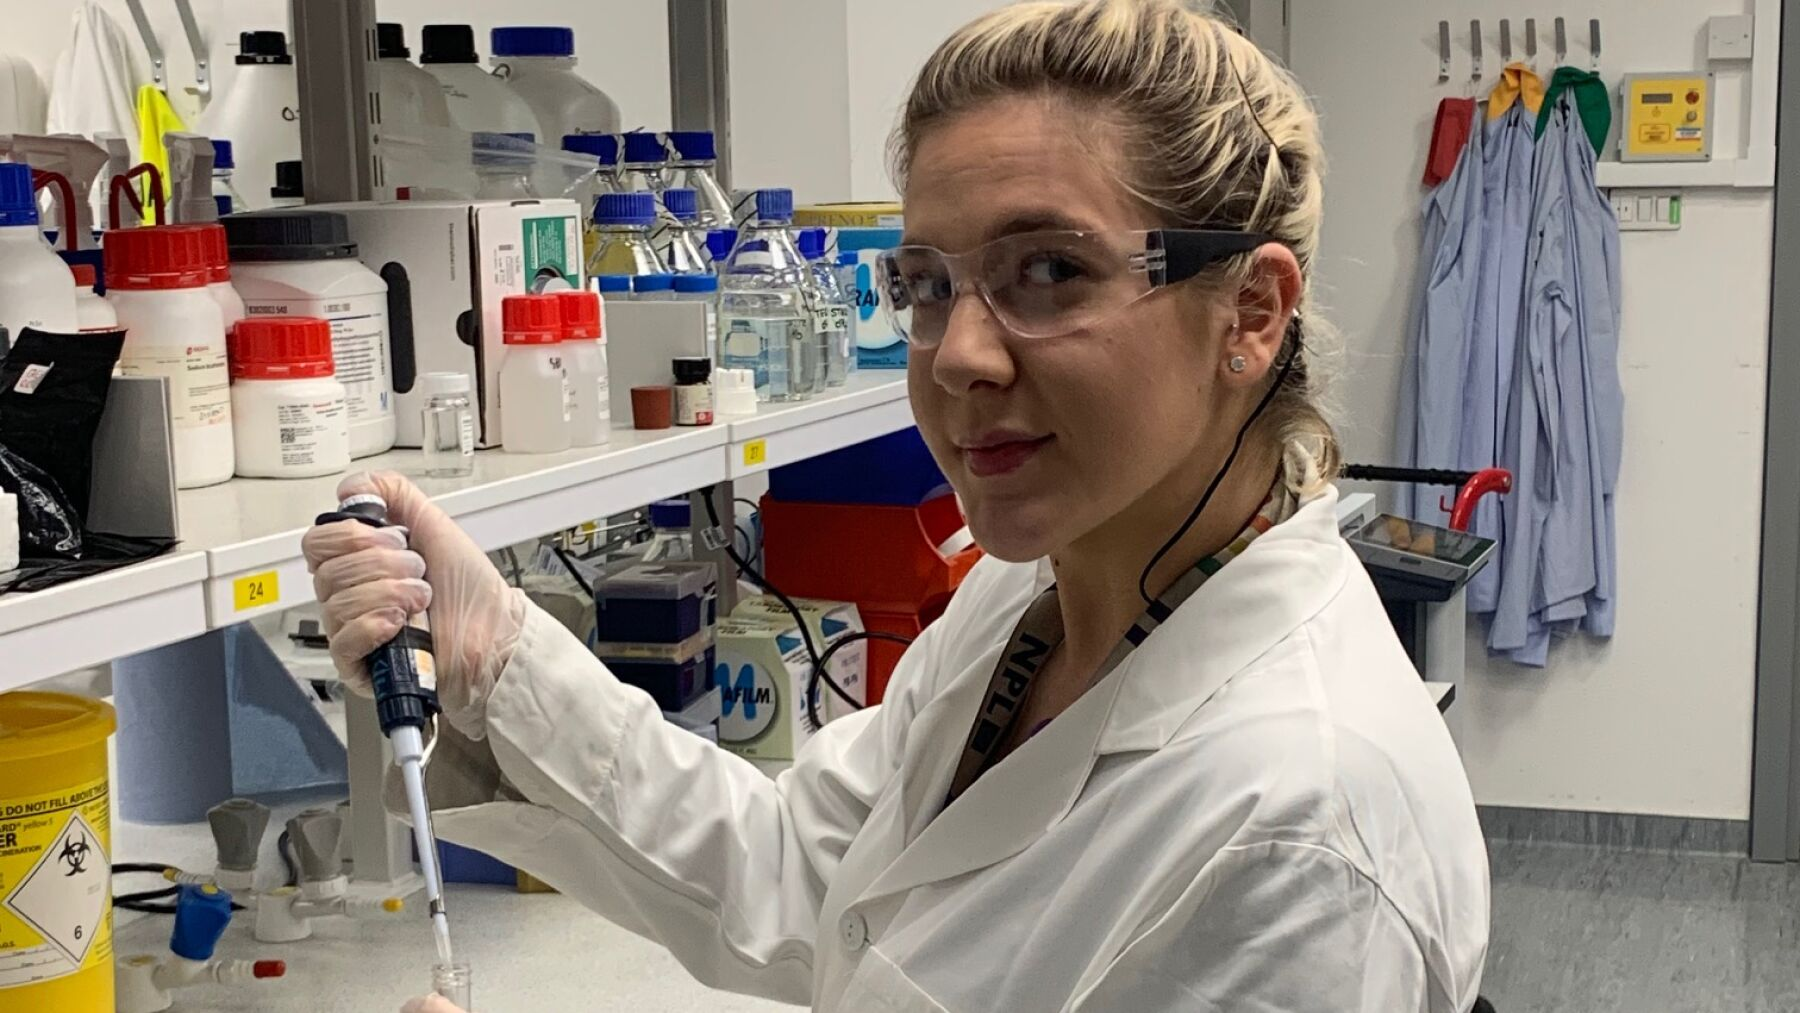 Jessica a lab apprentice  at King's College London University holding a pipet towards a flask and looking towards the camera